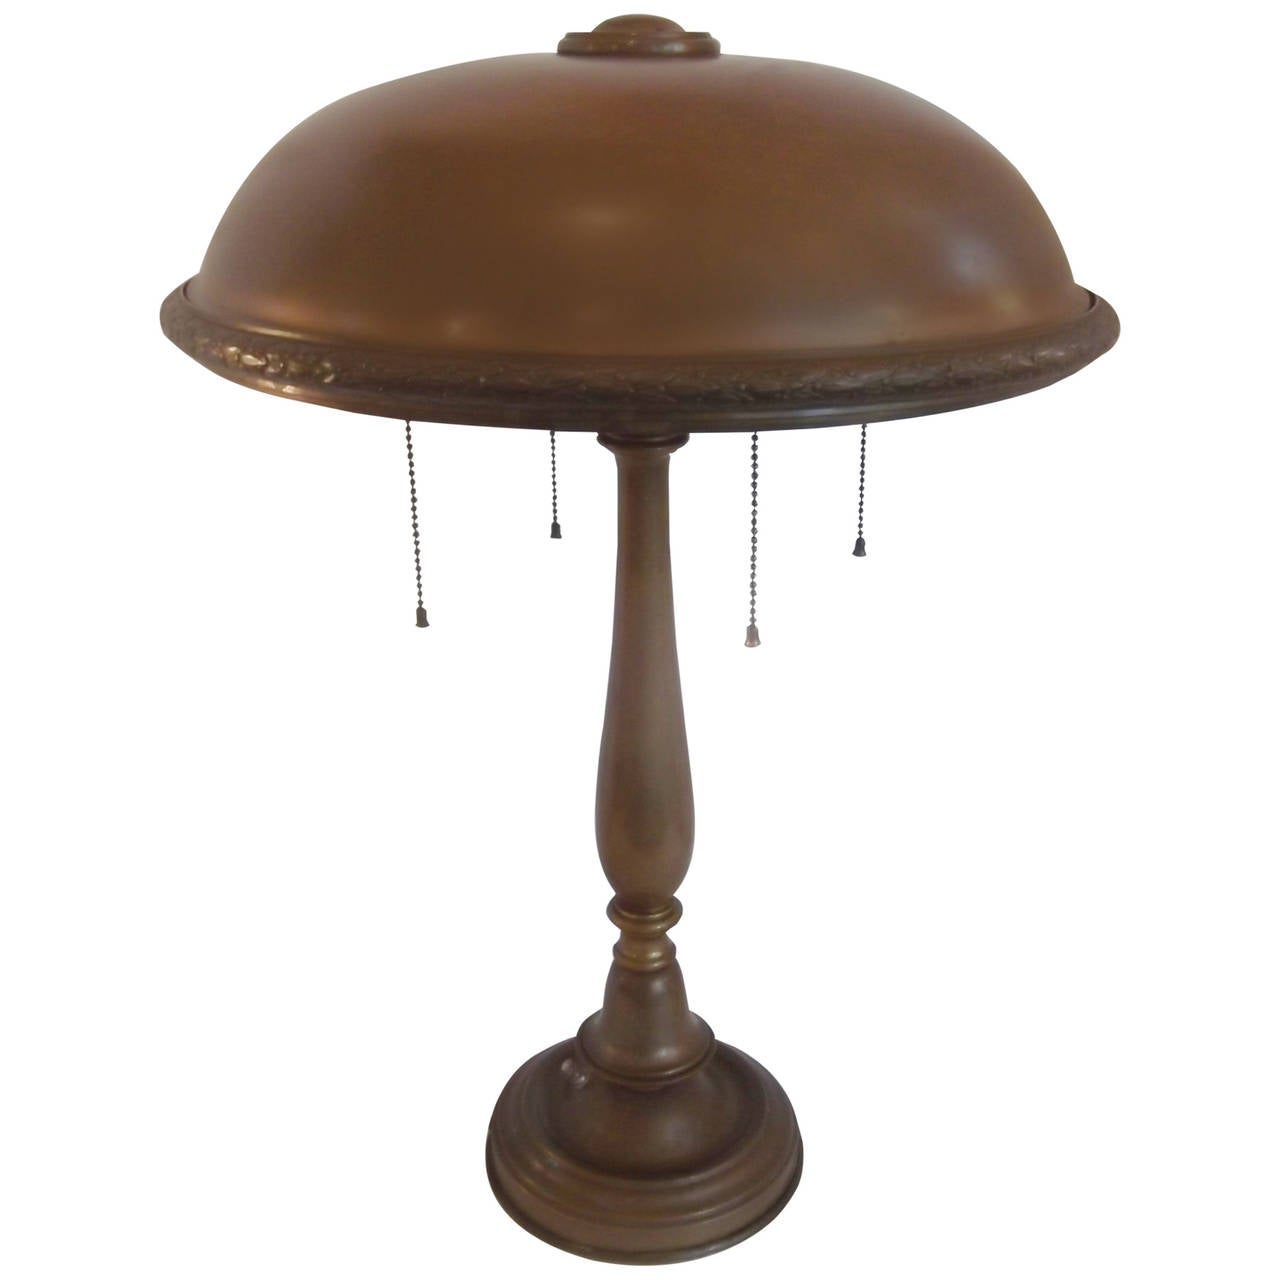 solid brass table lamp circa 1900 1910. Black Bedroom Furniture Sets. Home Design Ideas